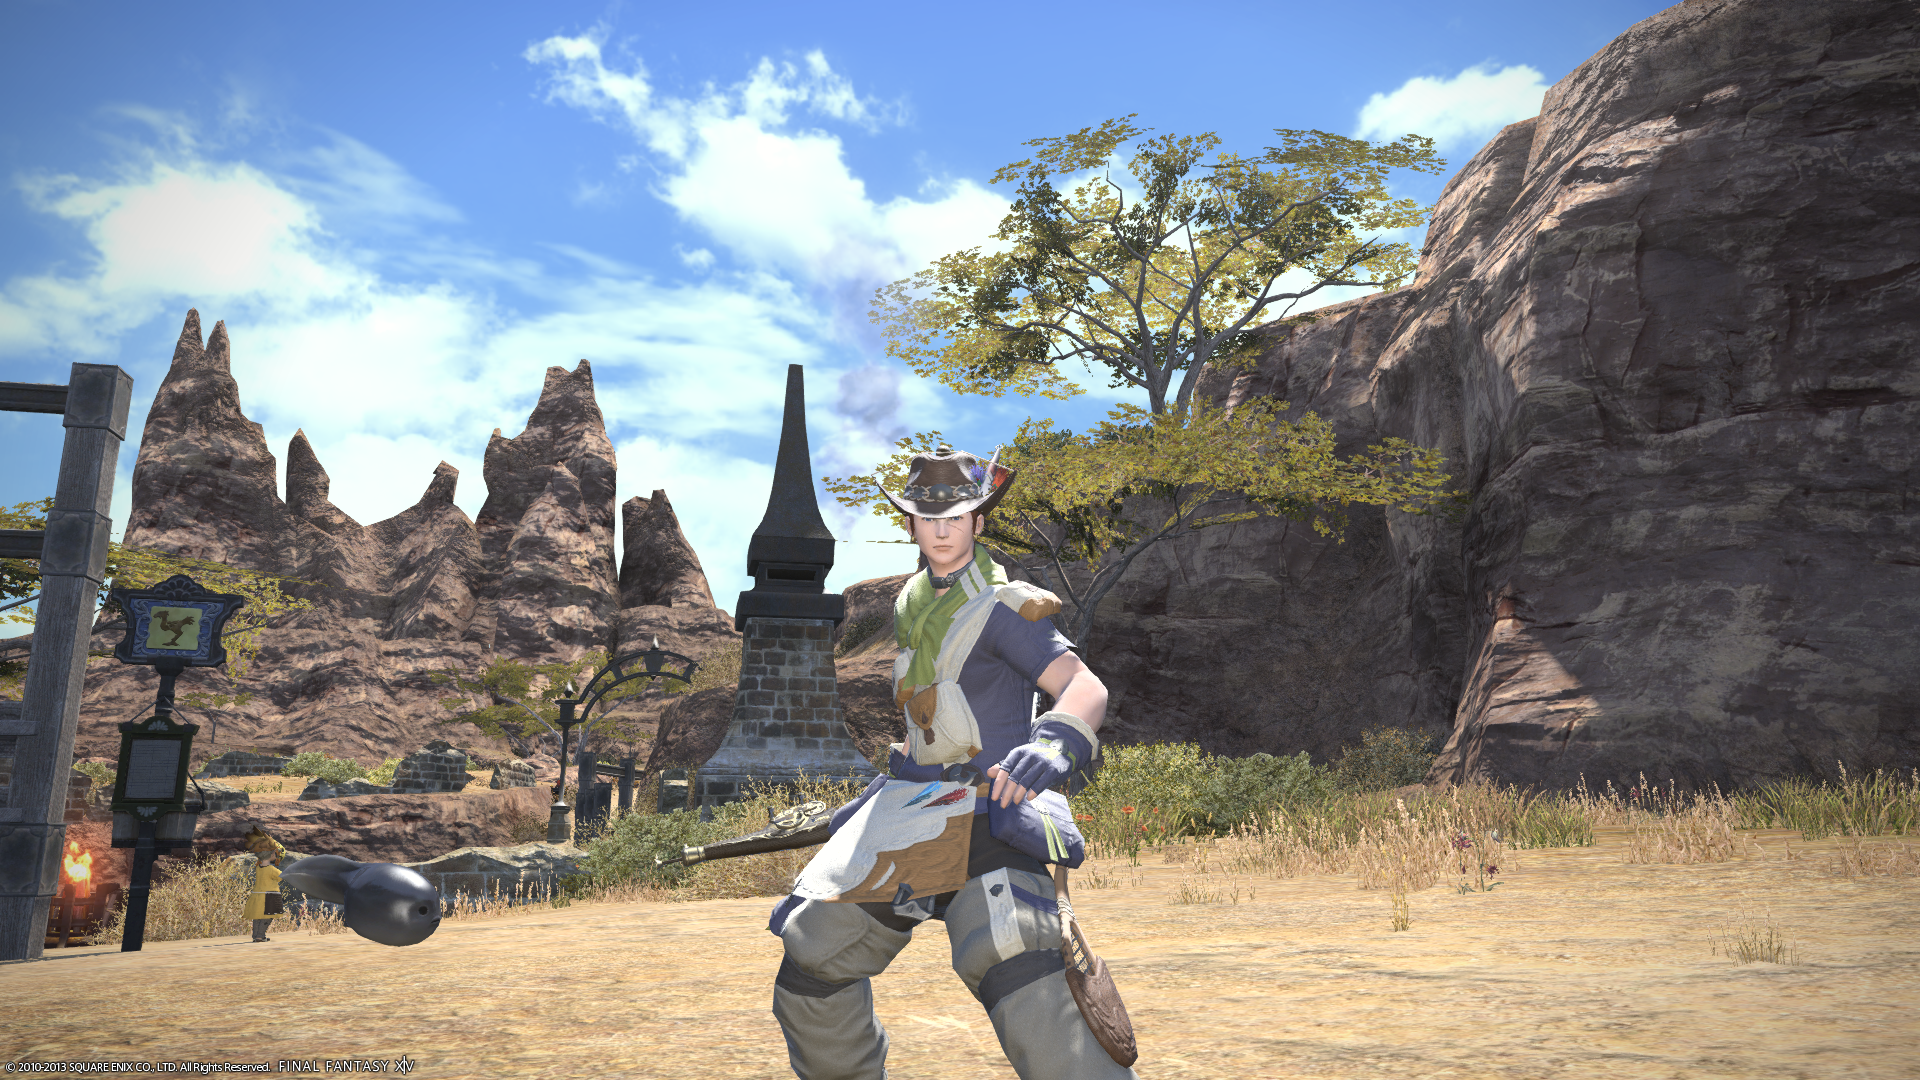 rocl  something titans mods spam server also attack ff14